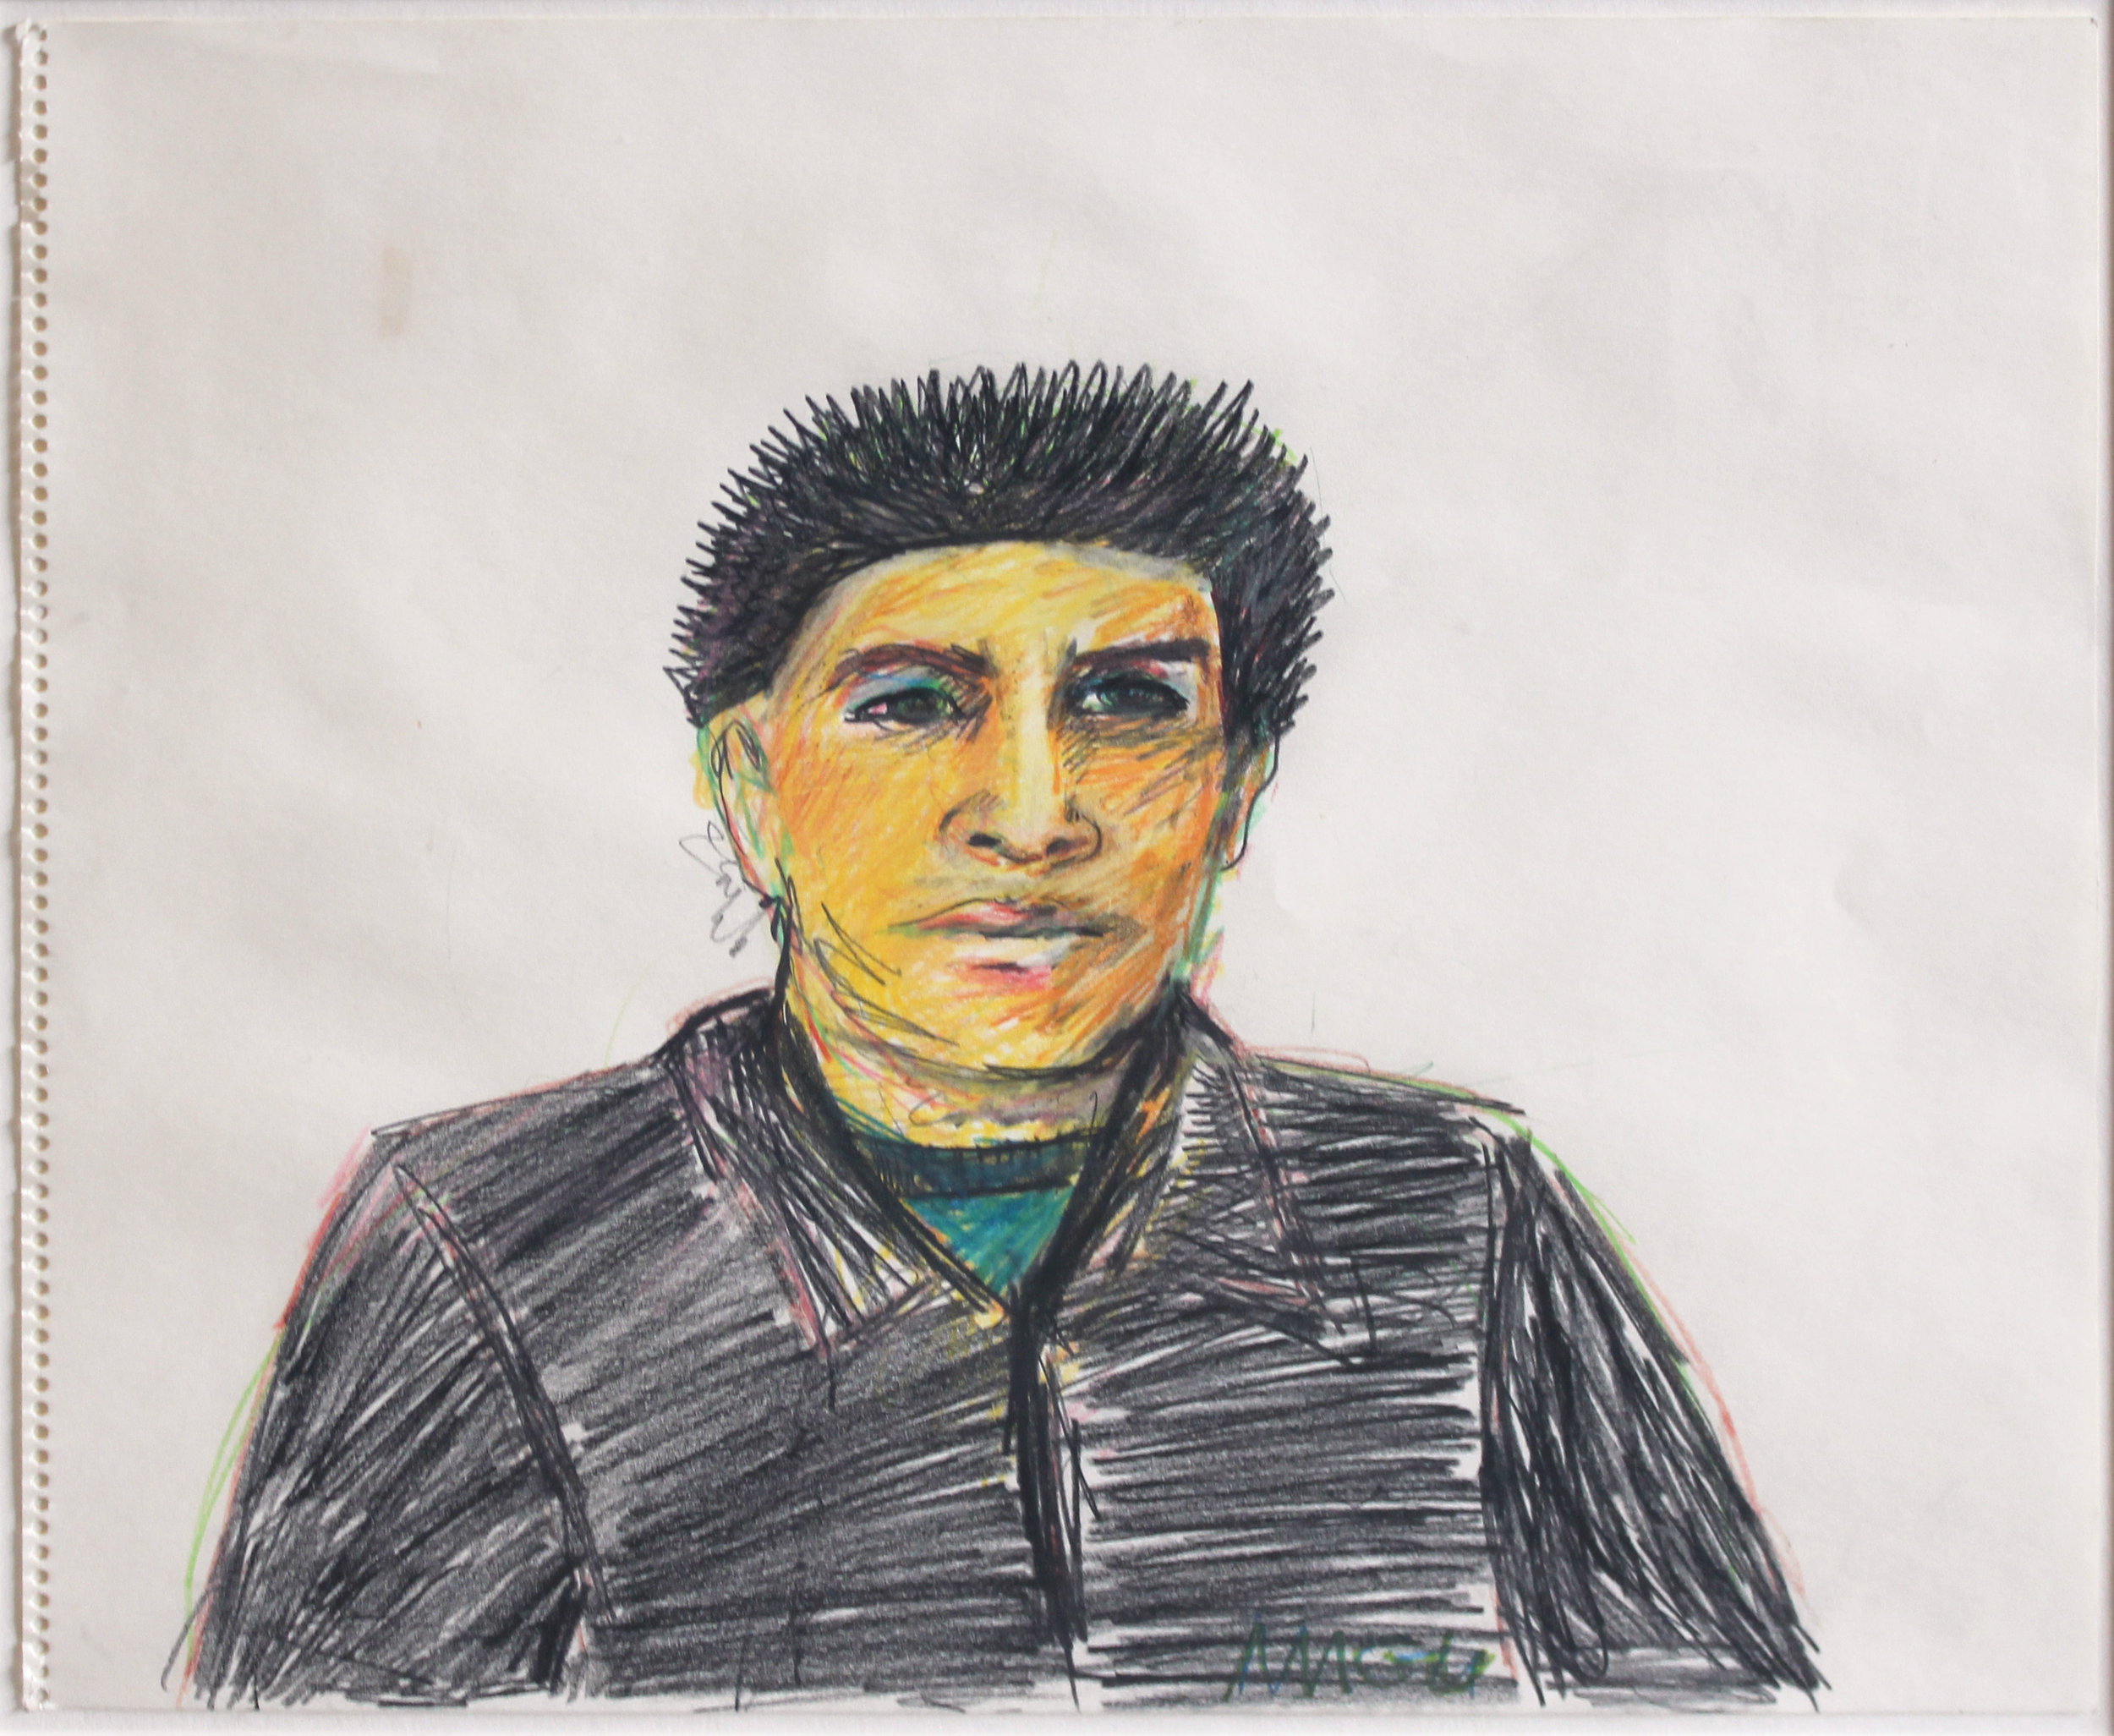 Gilbert Magu Lujan  Self Portrait , c. 1975 Prismacolor crayon on paper Signed on recto Sheet: 14 x 17 inches; Framed: 21 x 24 inches Provenance: Acquired by present owner from Carole Hawkes collection, Los Angeles, CA Estimate: $3,000/$4,000